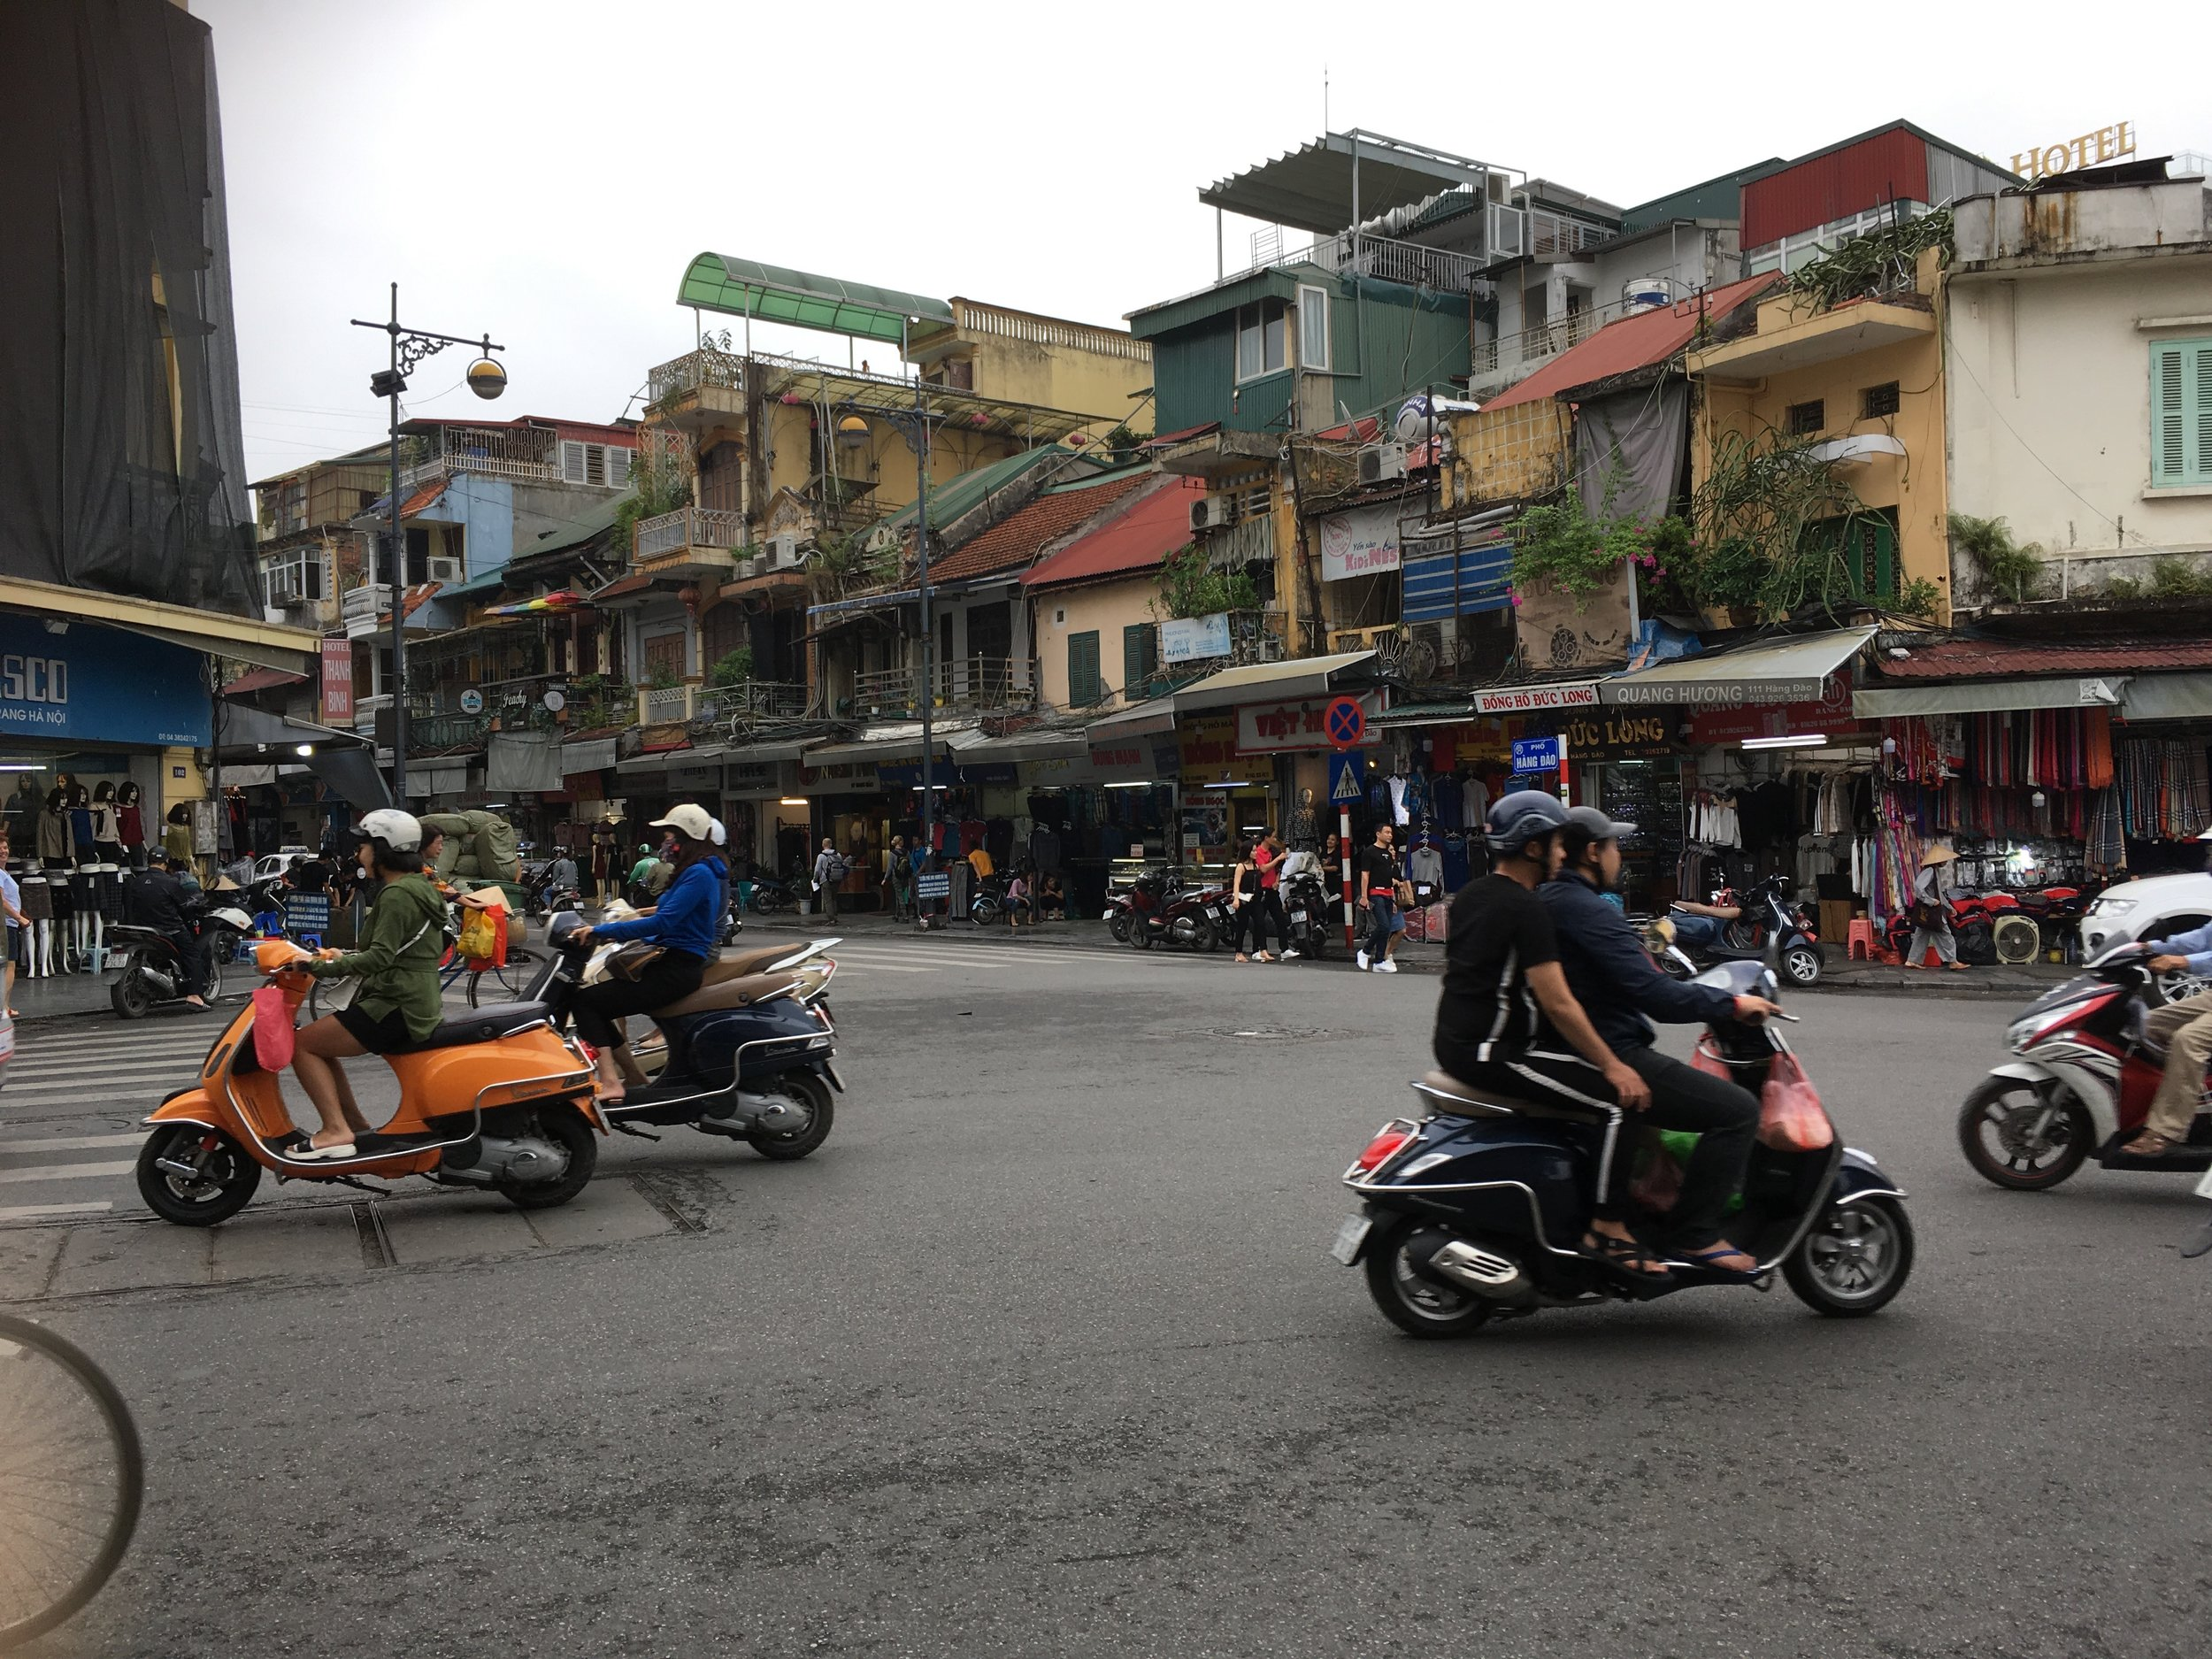 A very lively city with lots of motorbikes!